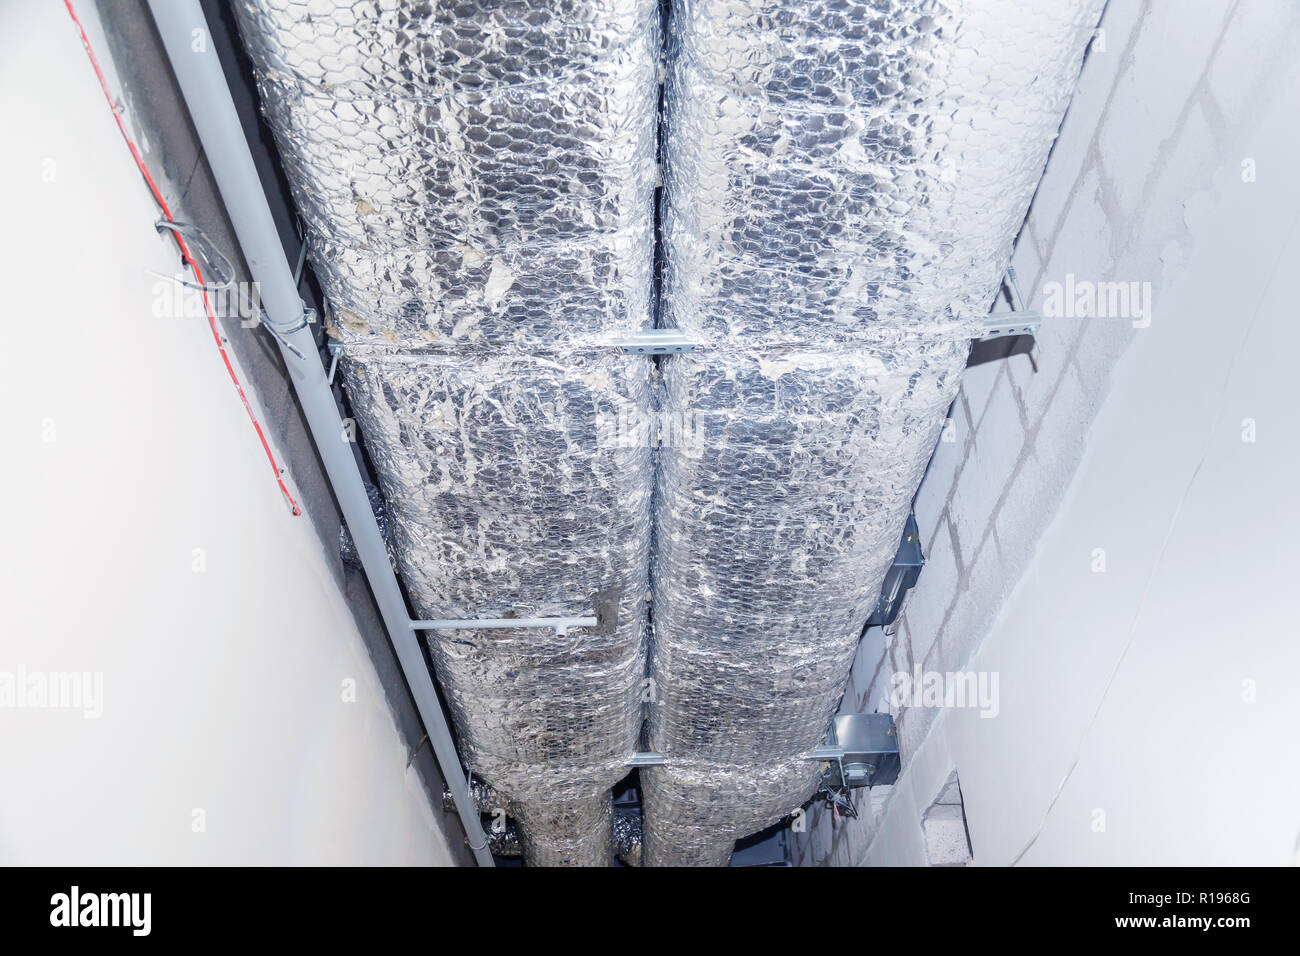 Hvac Duct Stock Photos & Hvac Duct Stock Images - Alamy